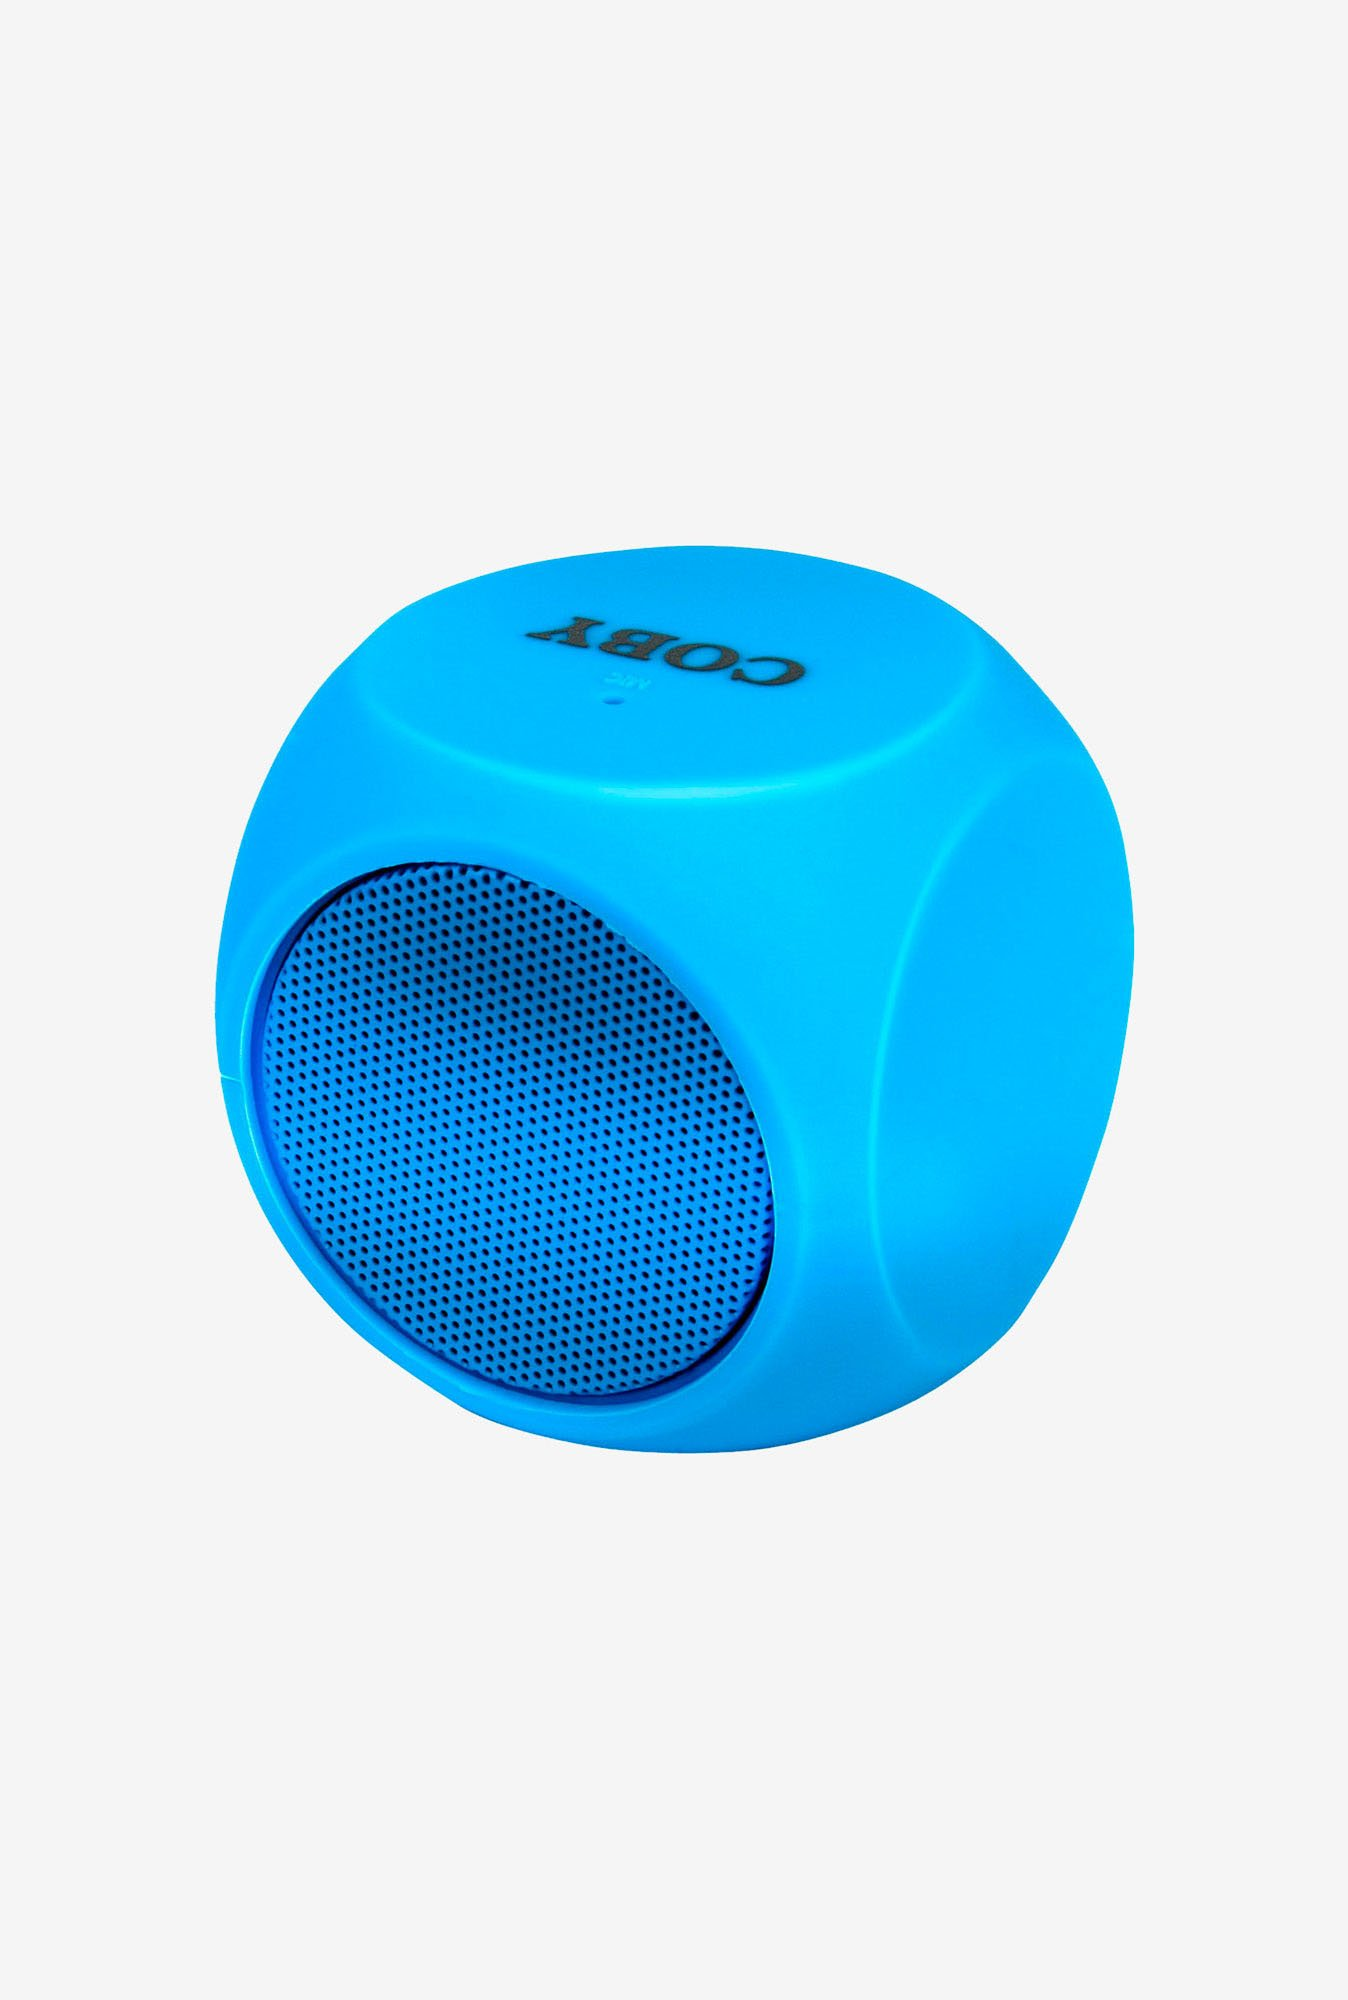 Coby CSBT-314-BLU Cube Mini Bluetooth Speaker (Blue)